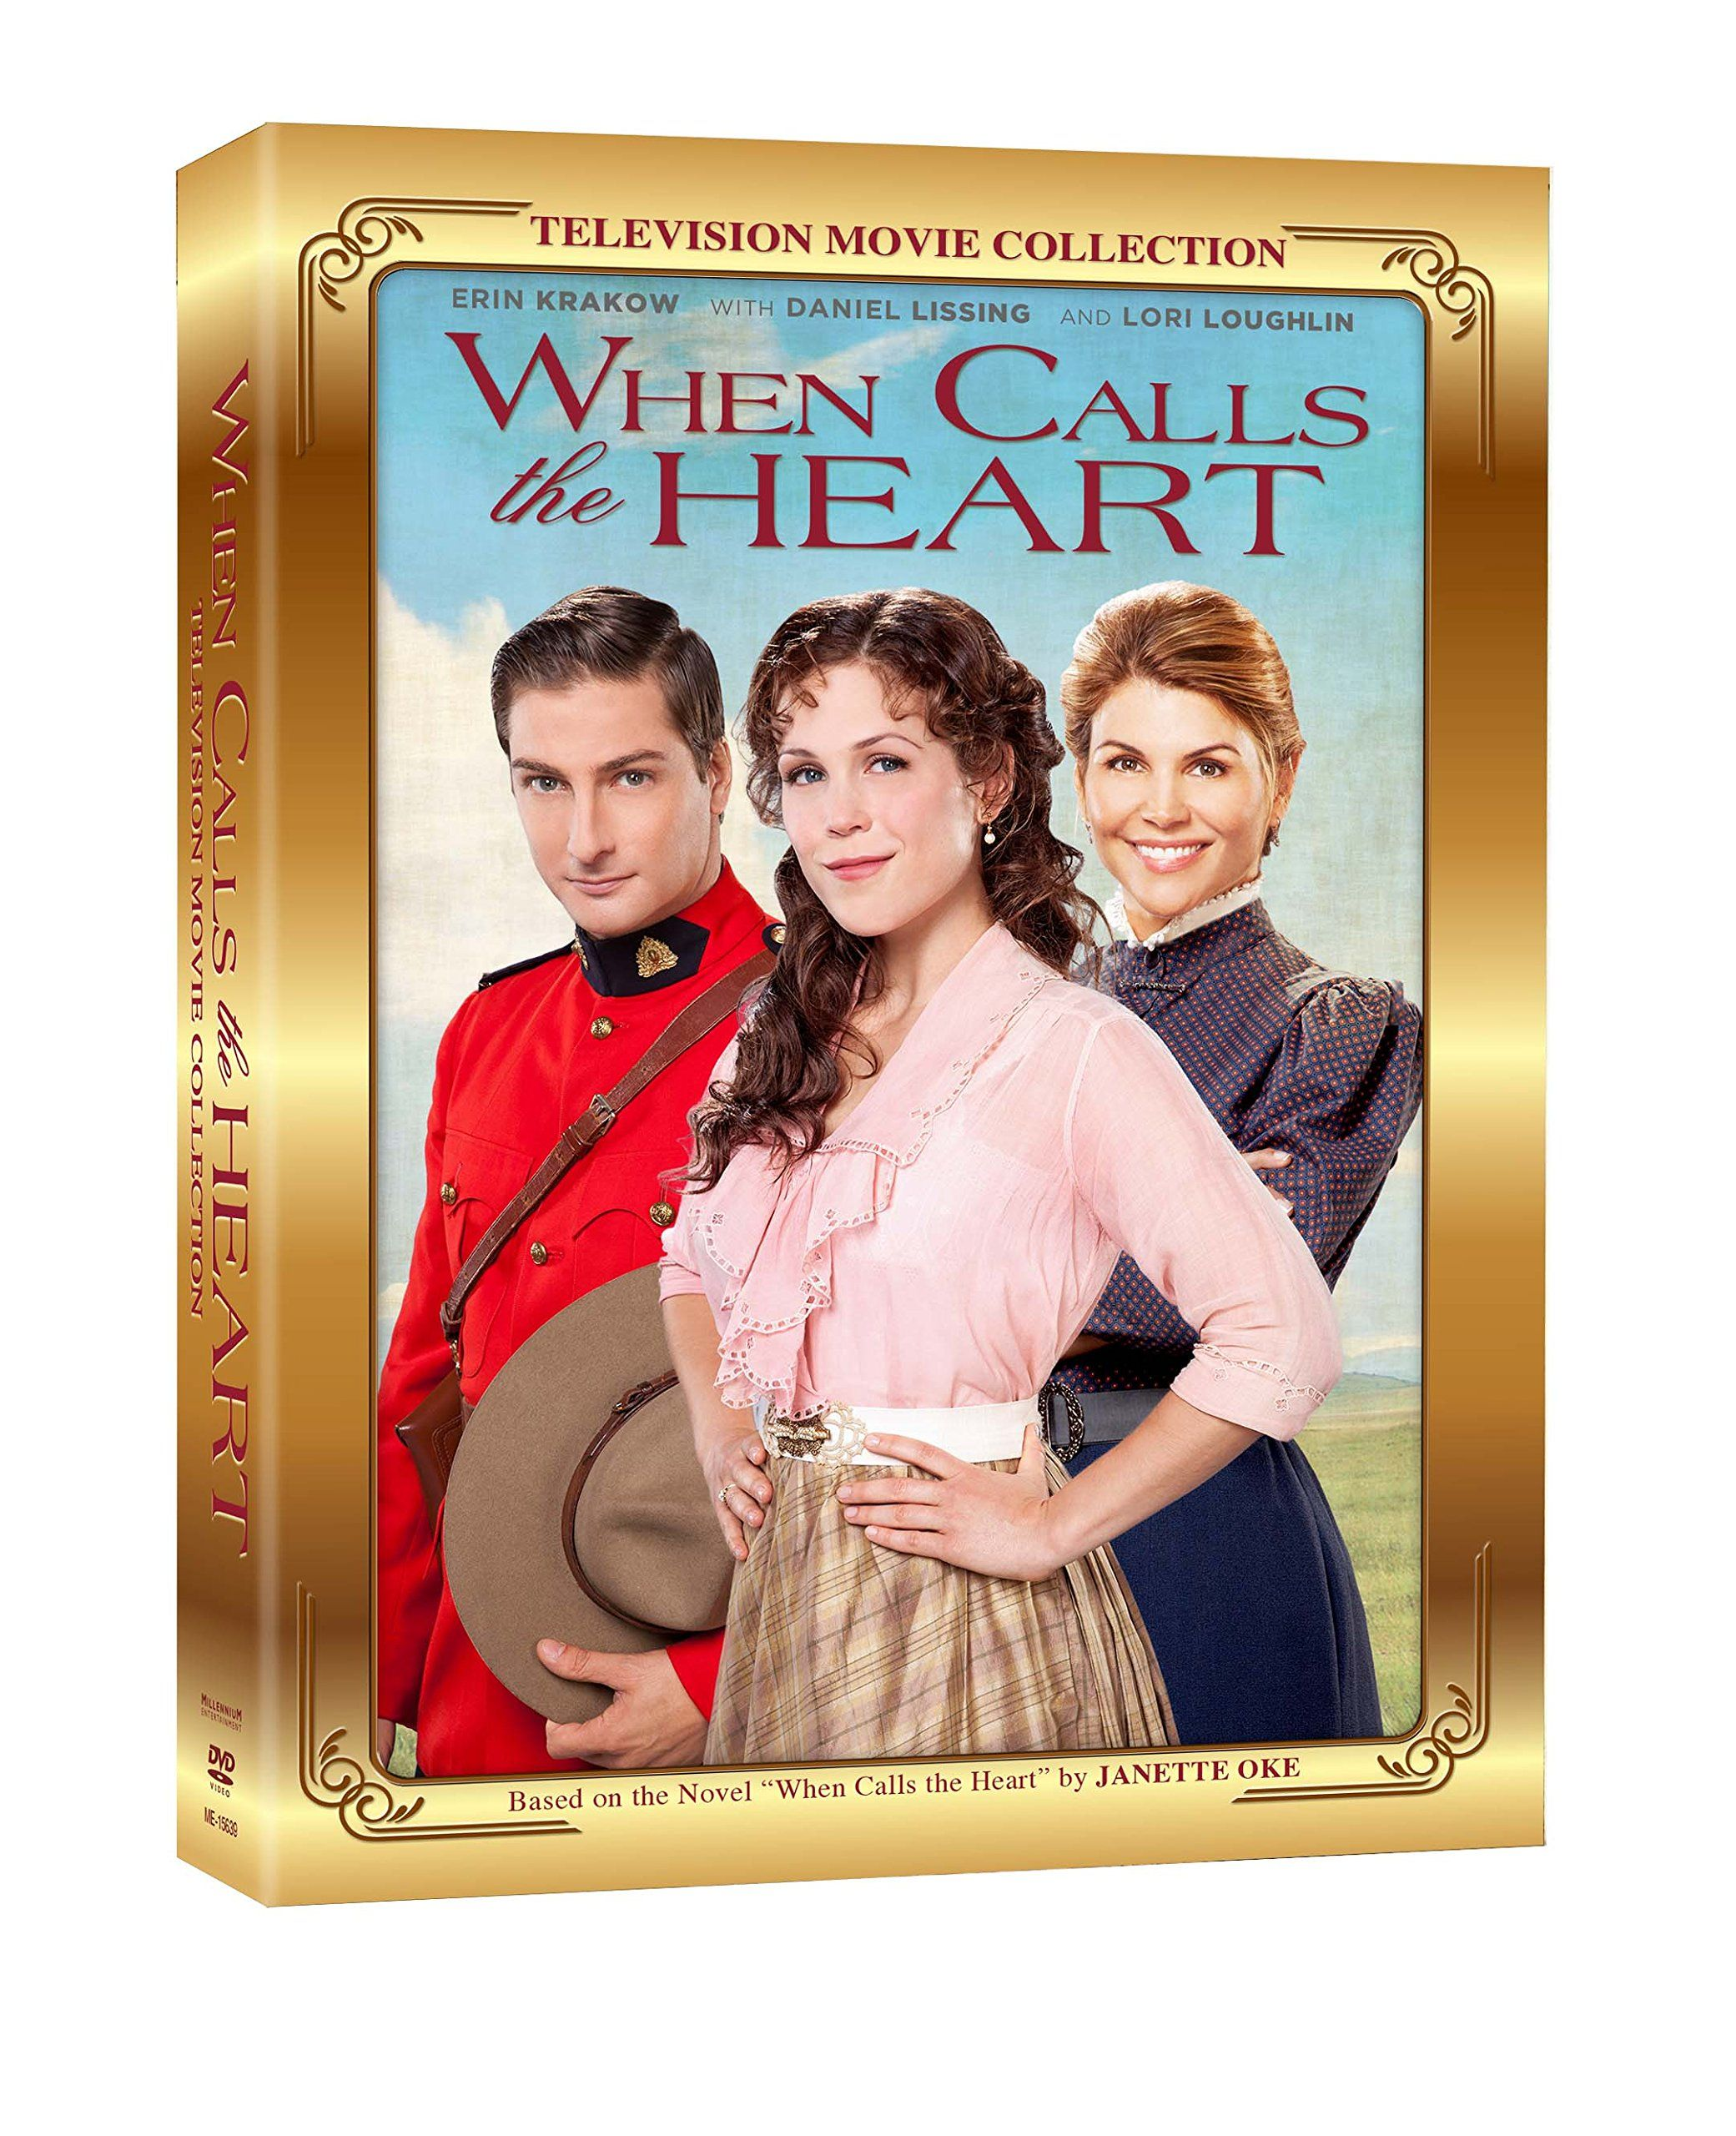 When Calls the Heart Television Movie